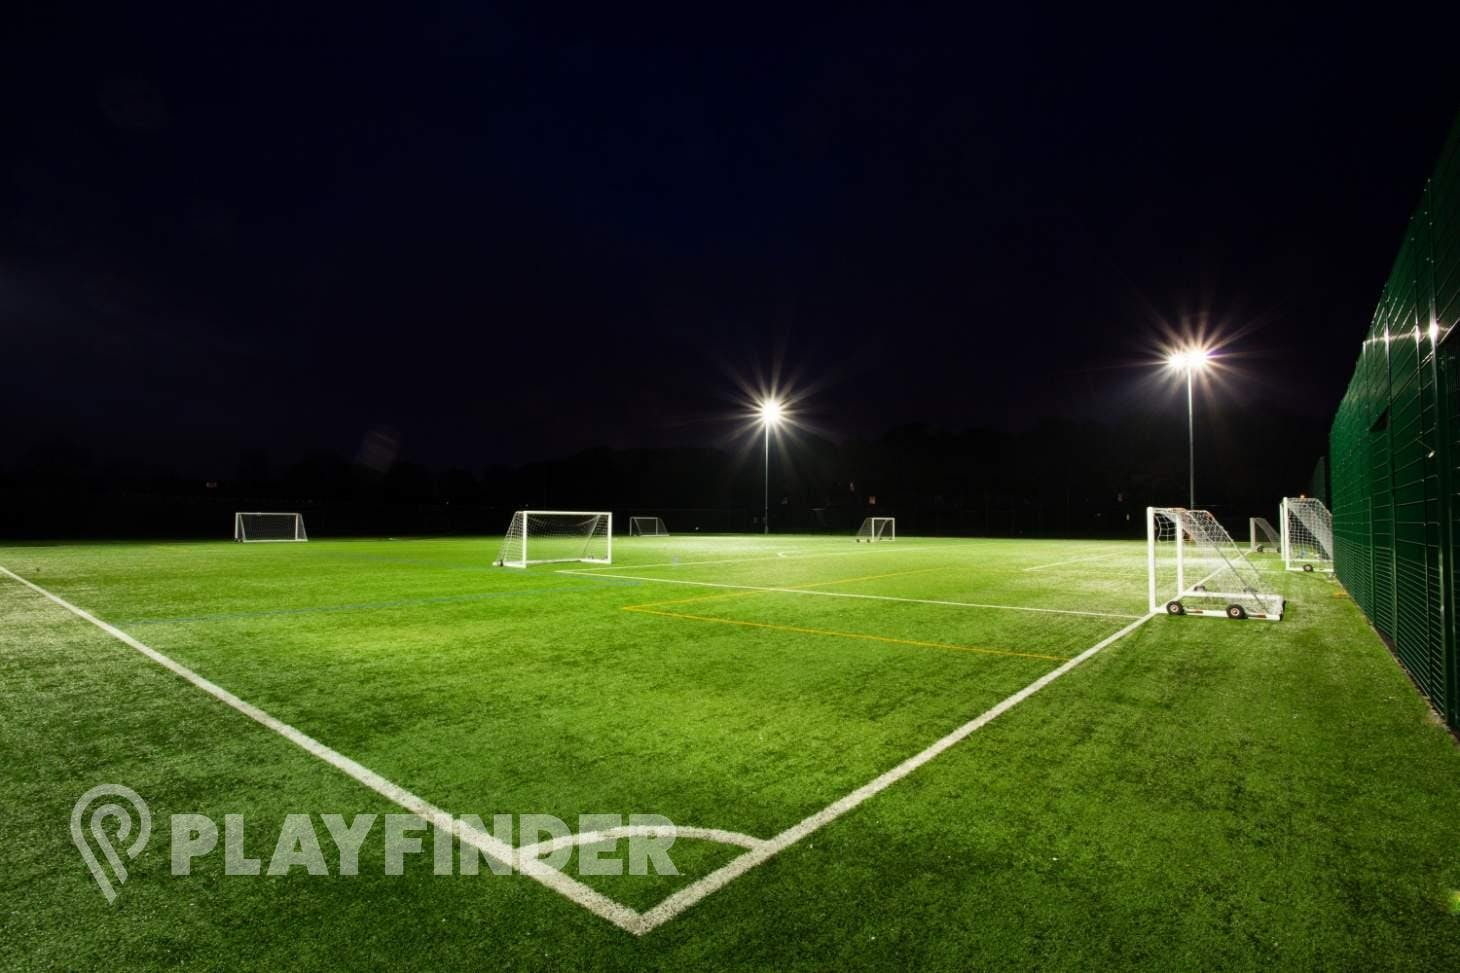 London Tigers Sports Complex 5 a side | 3G Astroturf football pitch